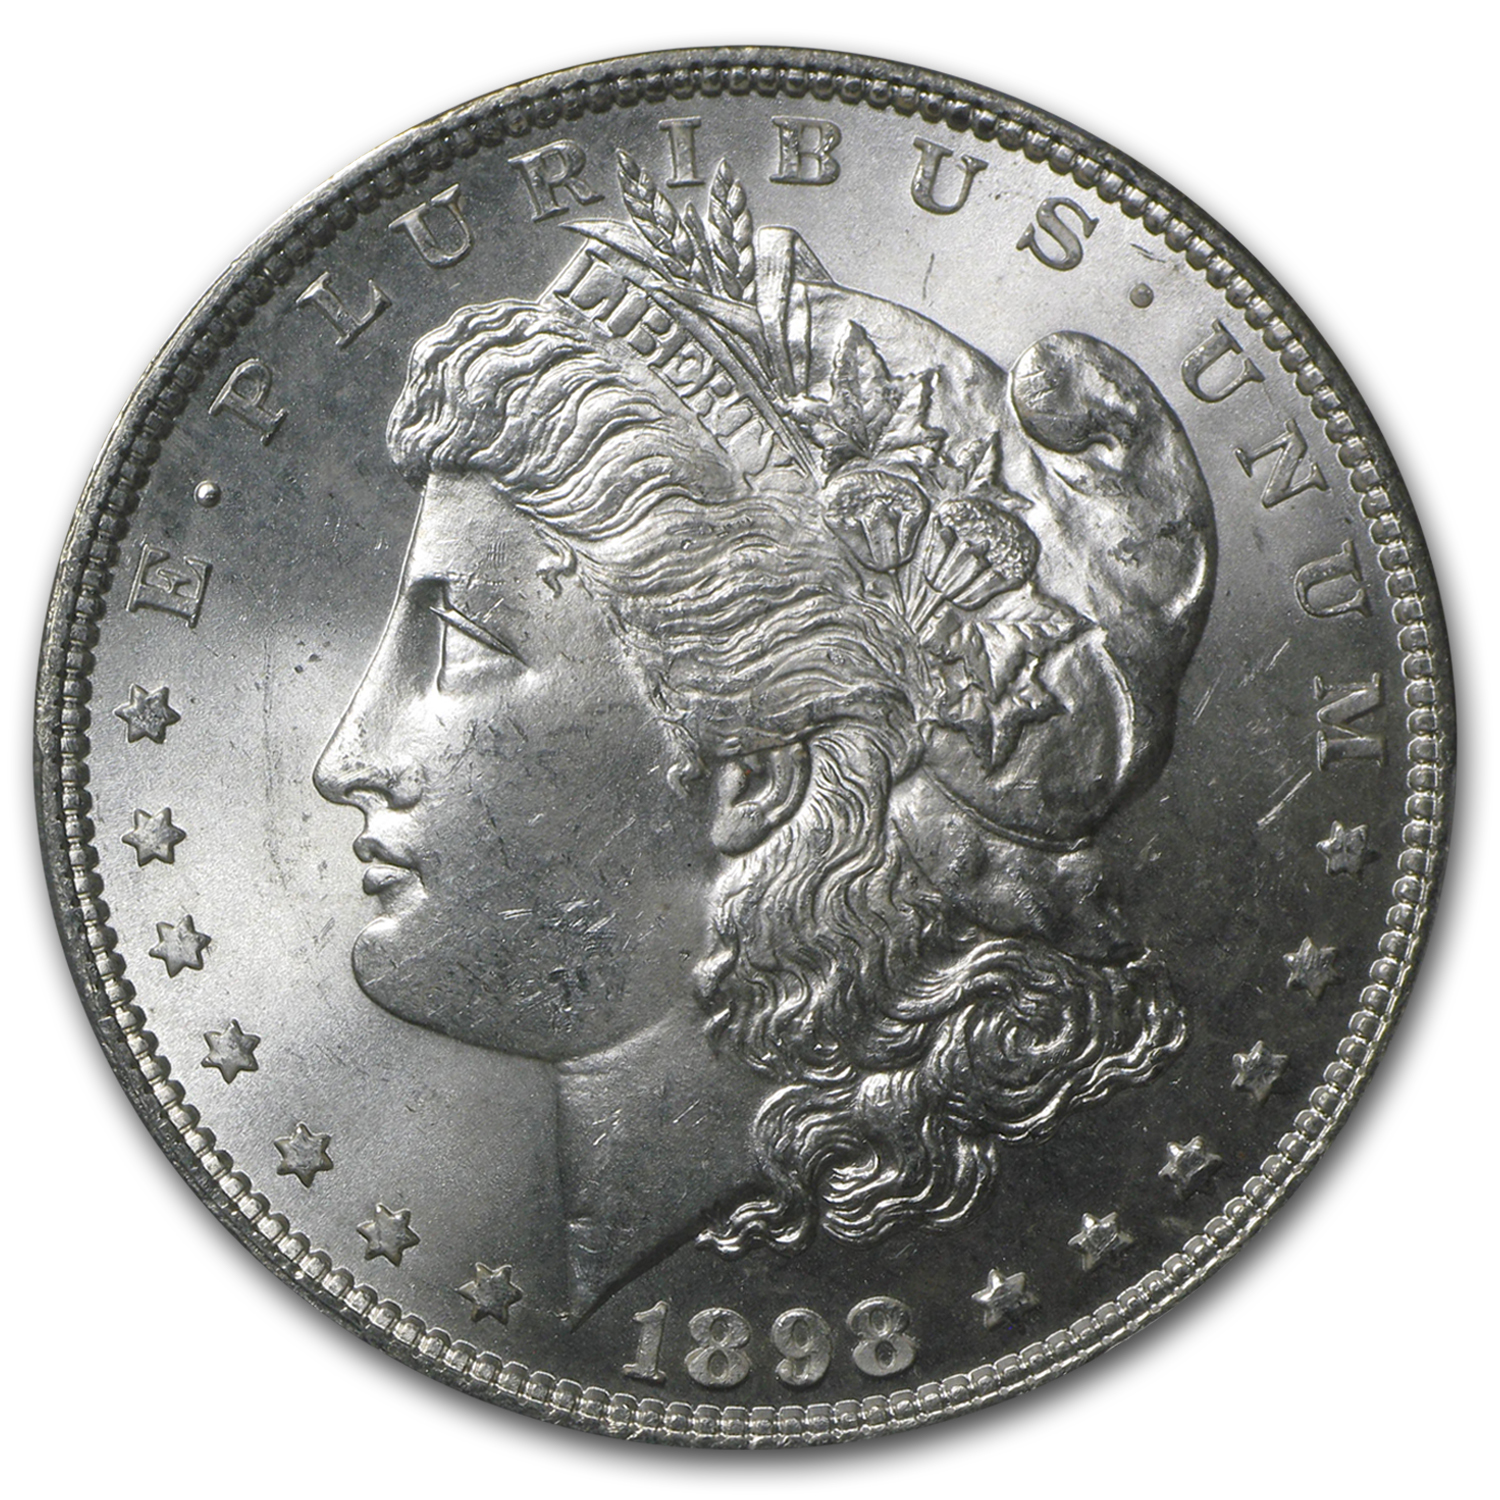 1898 Morgan Dollar - MS-64 PCGS